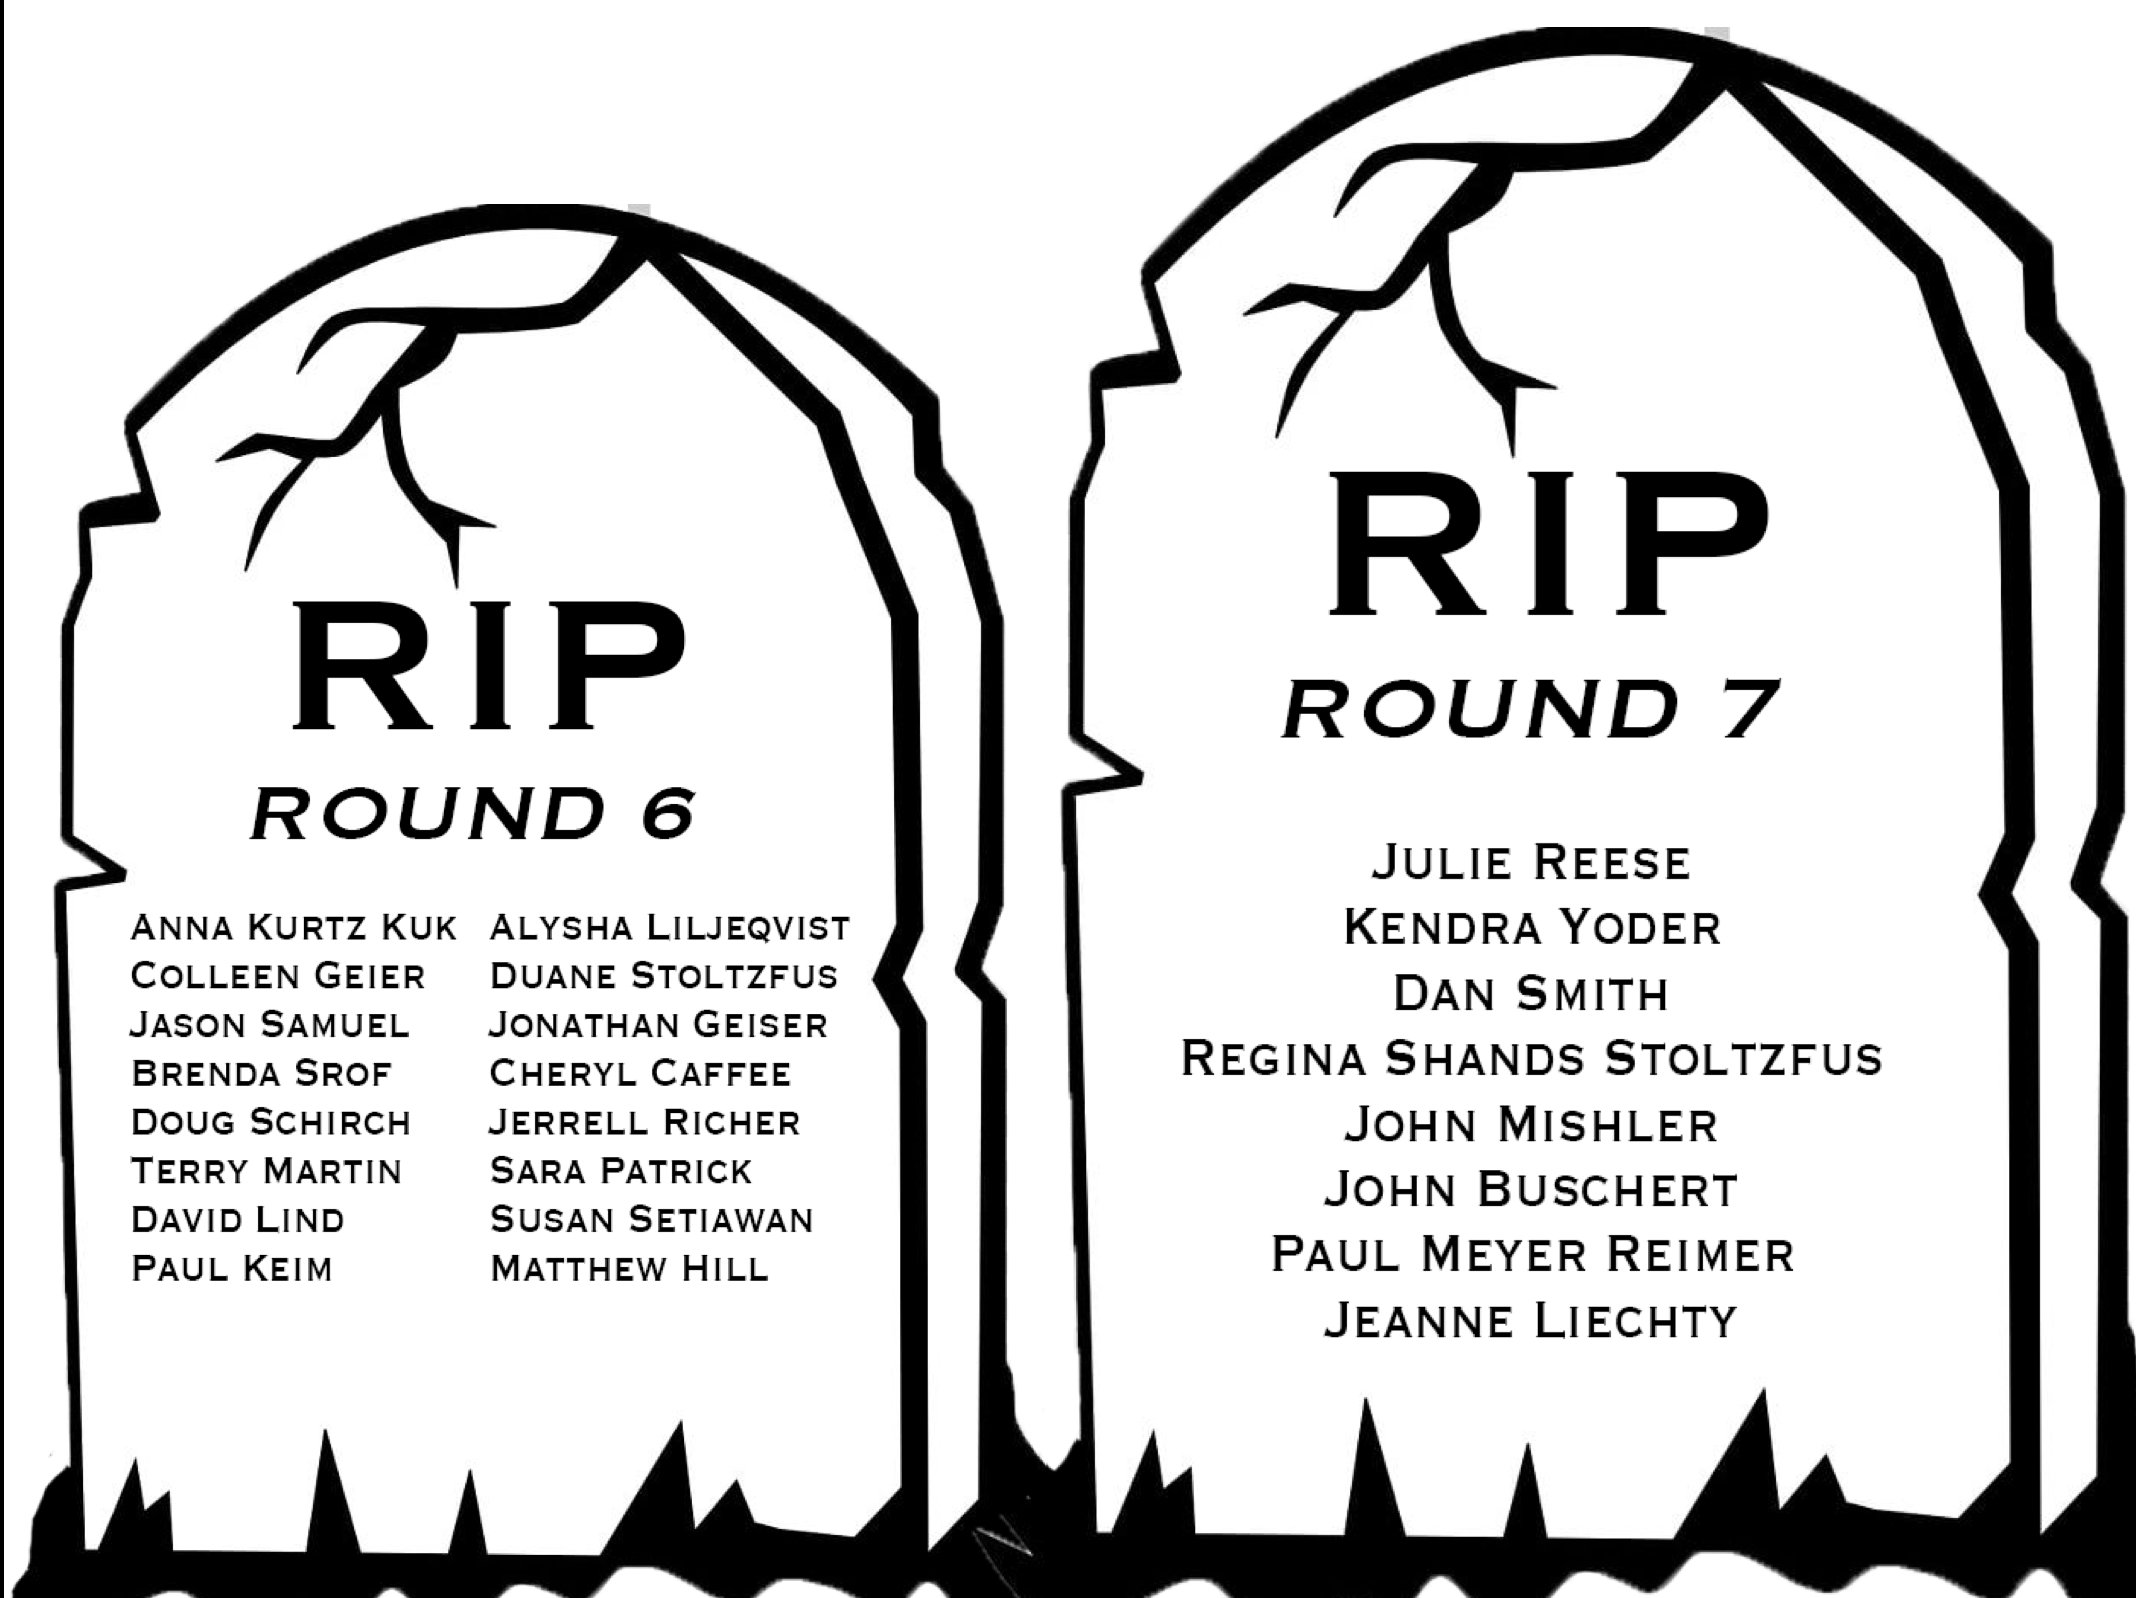 Tombstones featuring the names of the losing professors of the toughest prof bracket